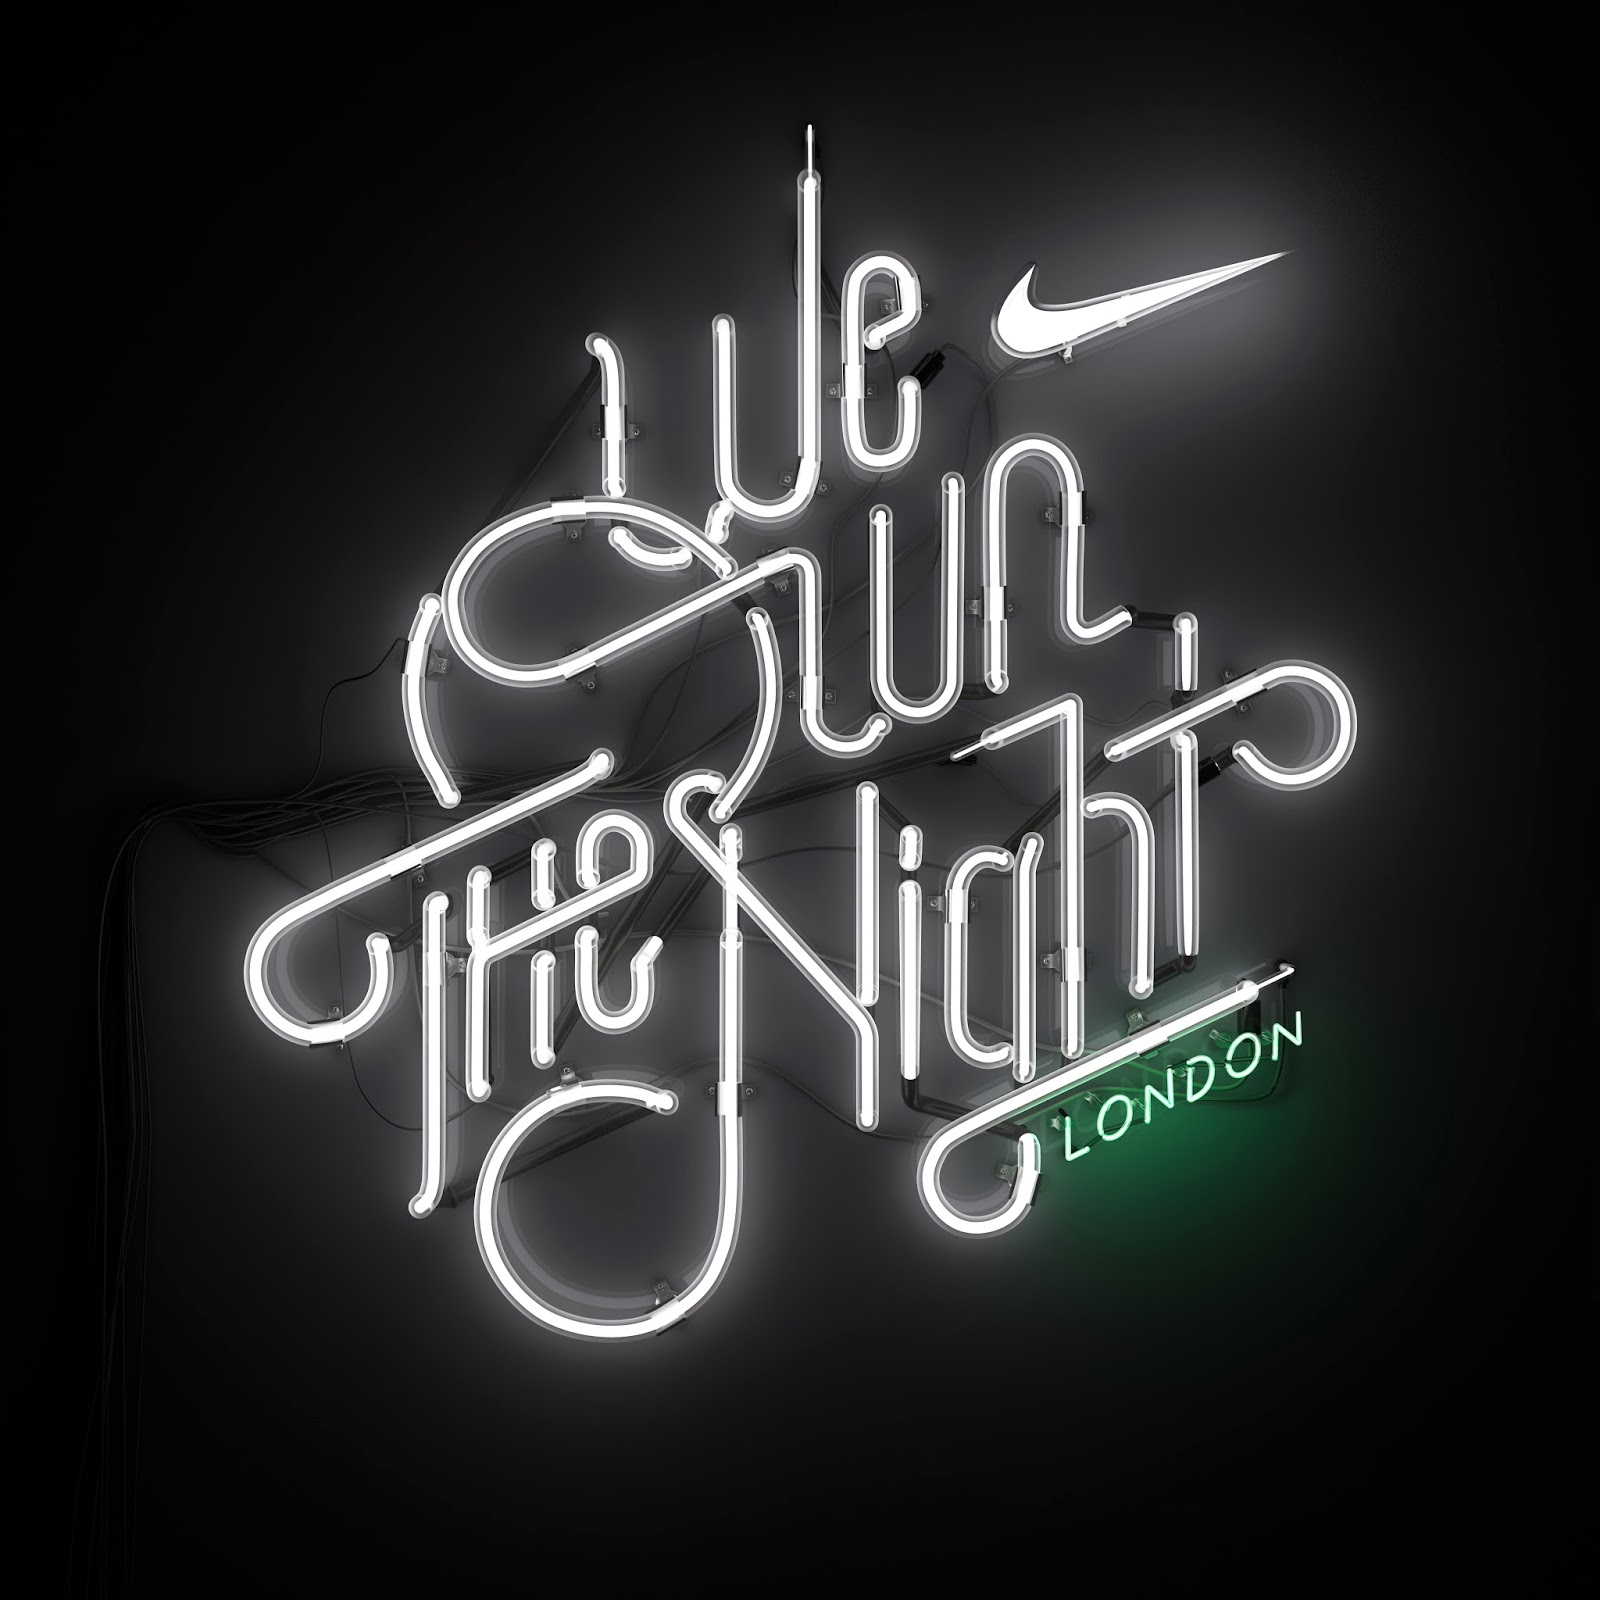 We Own the Night 10K London Race 2014